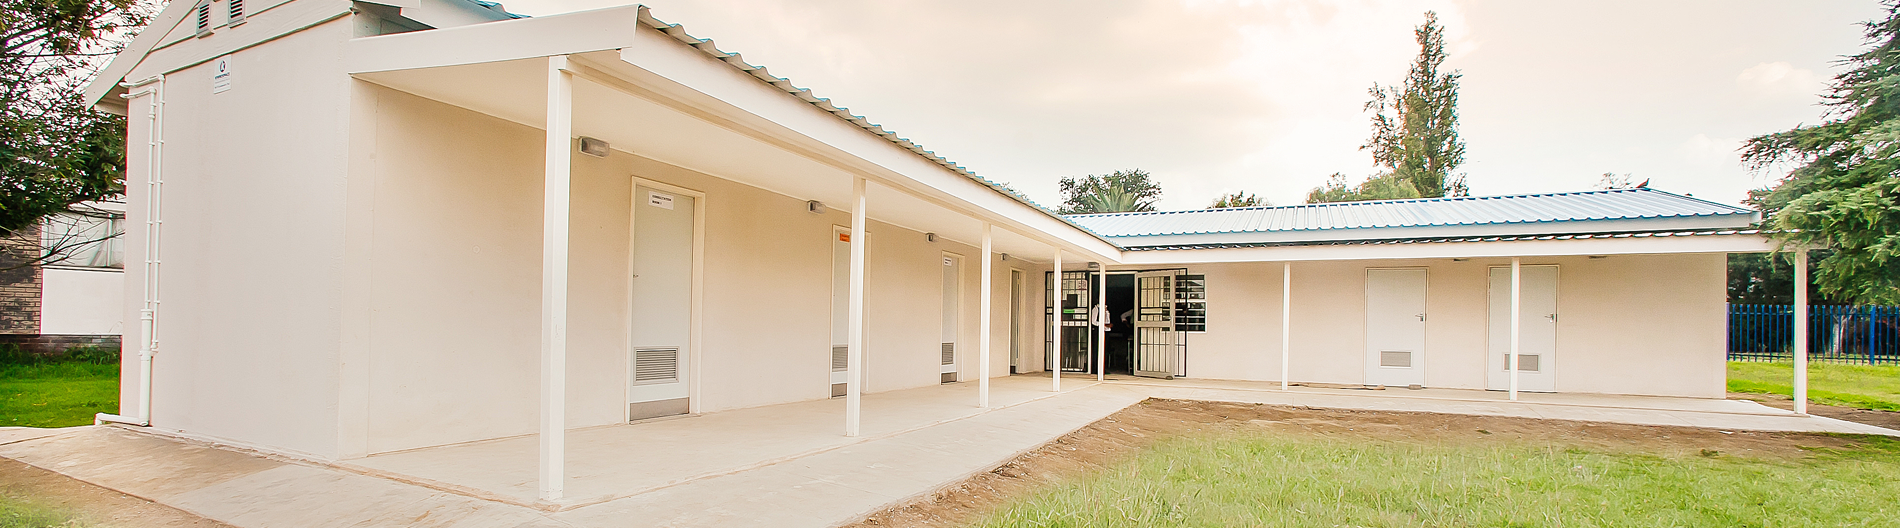 Prefabricated buildings are also known as prefabs.